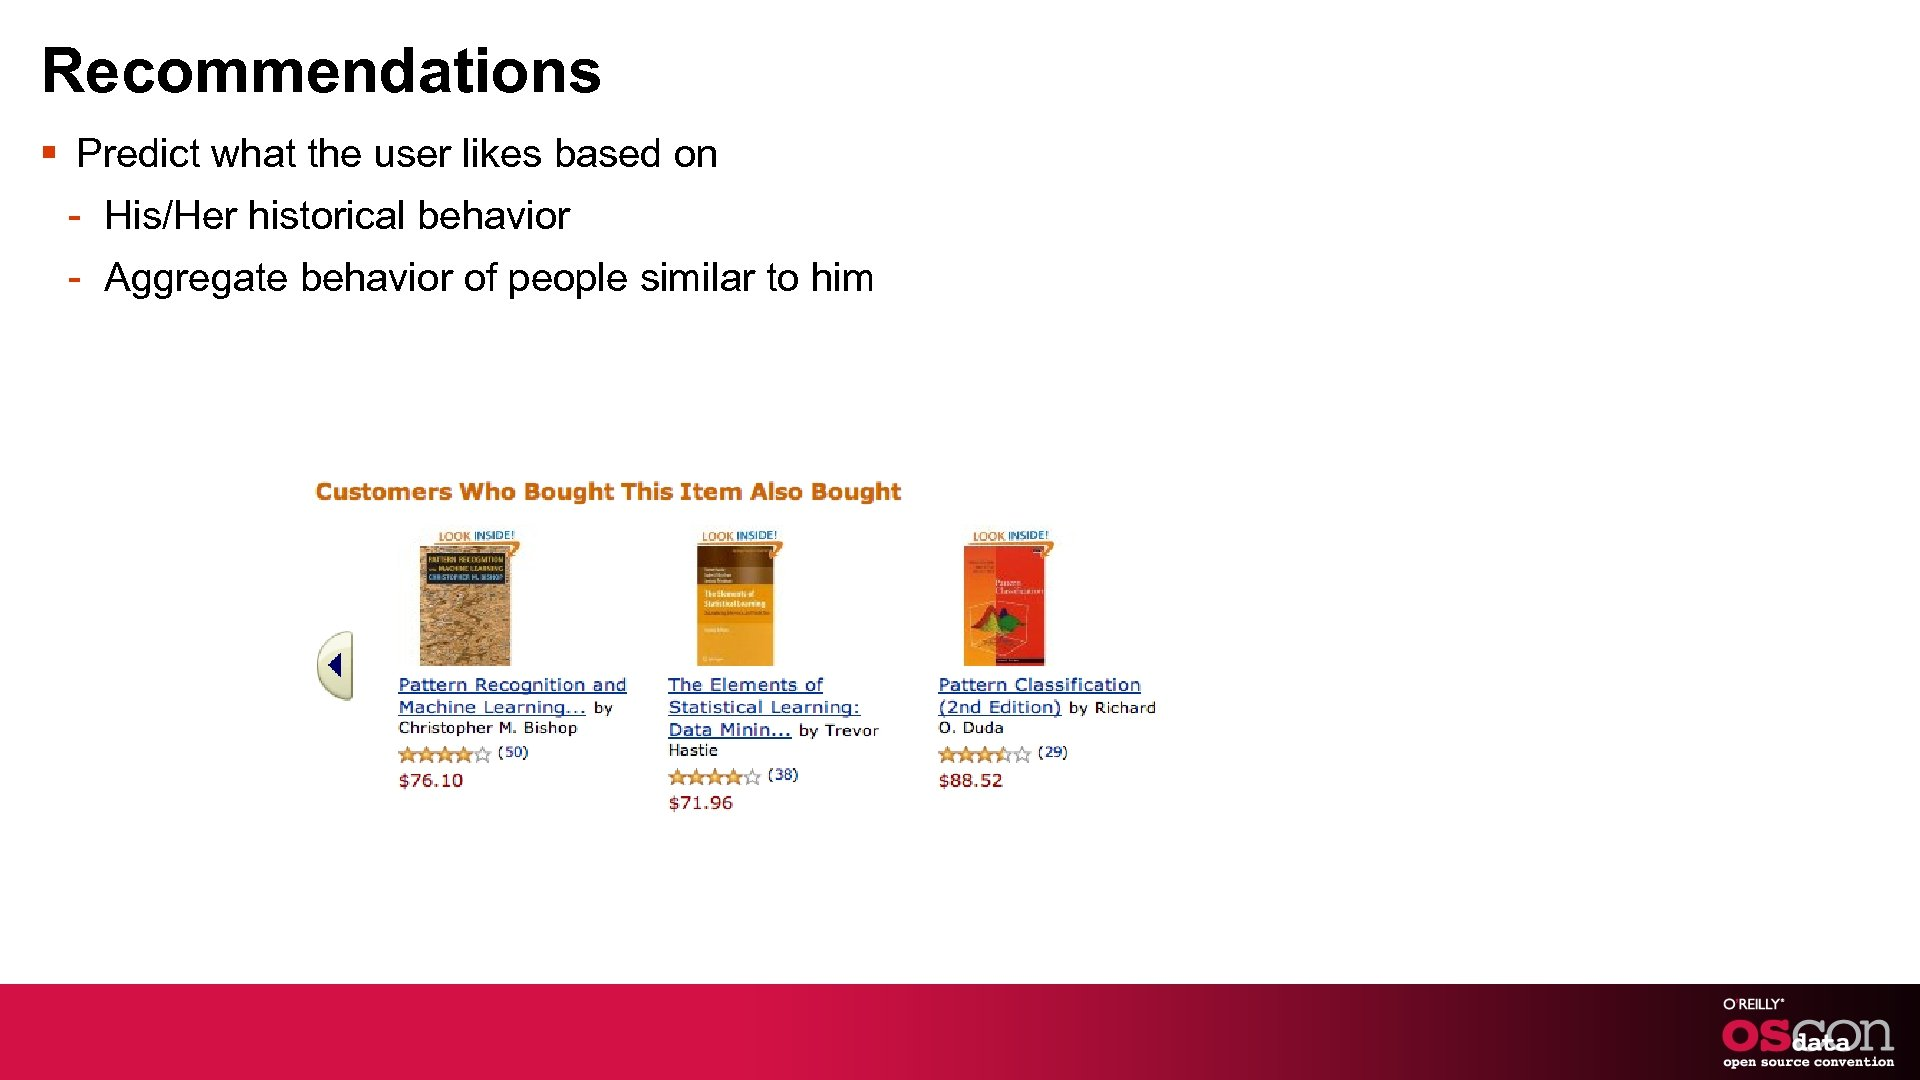 Recommendations § Predict what the user likes based on - His/Her historical behavior -